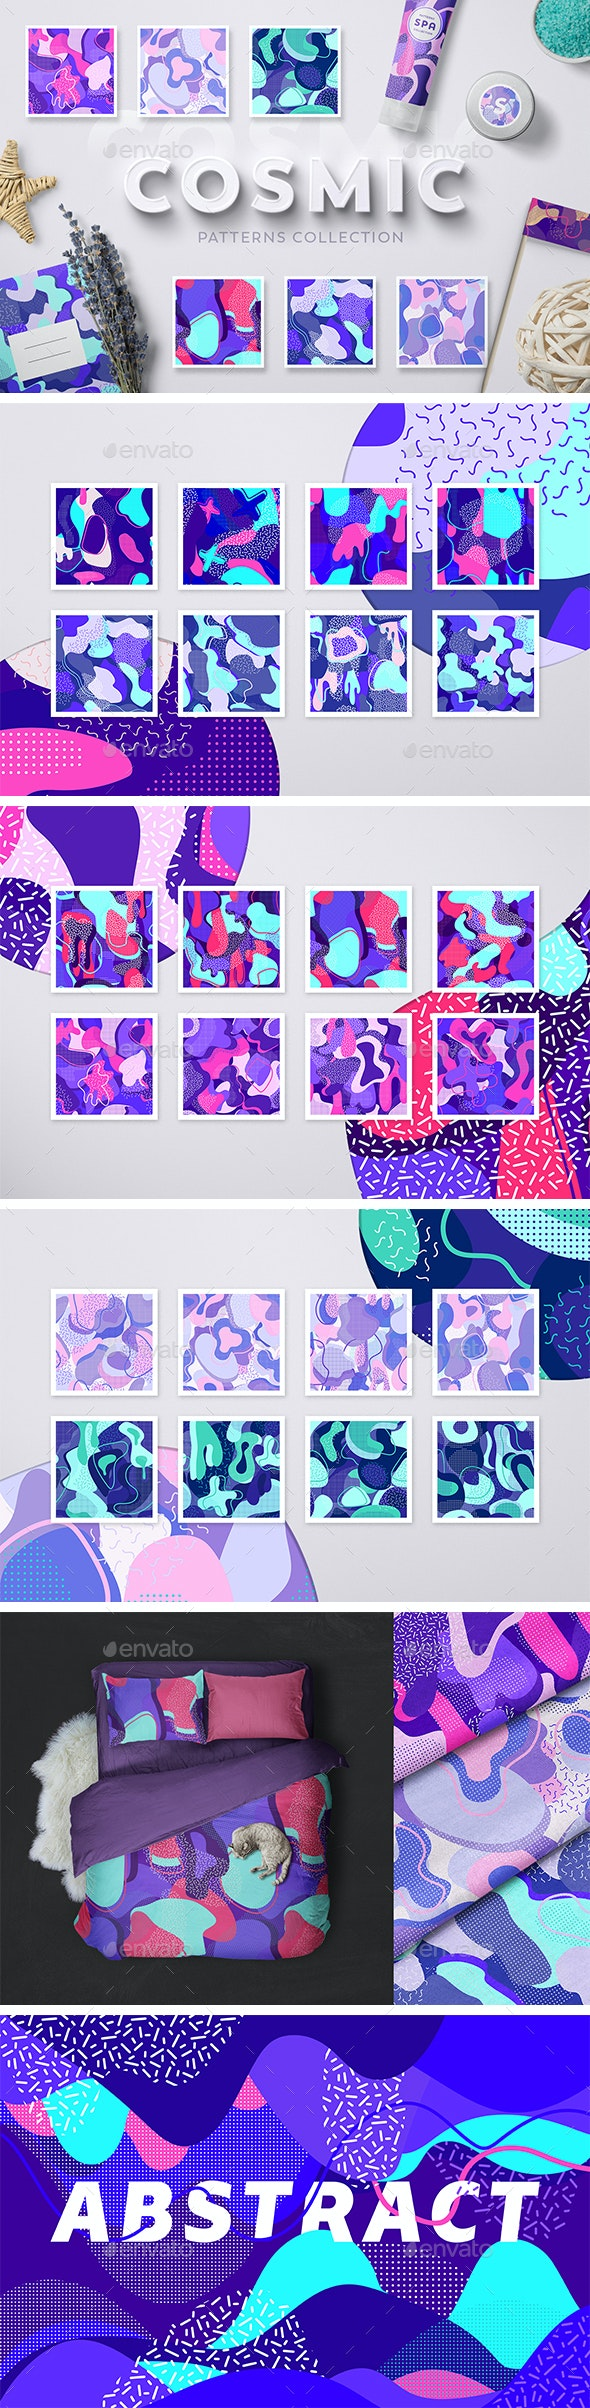 Cosmic Patterns Collection - Patterns Backgrounds